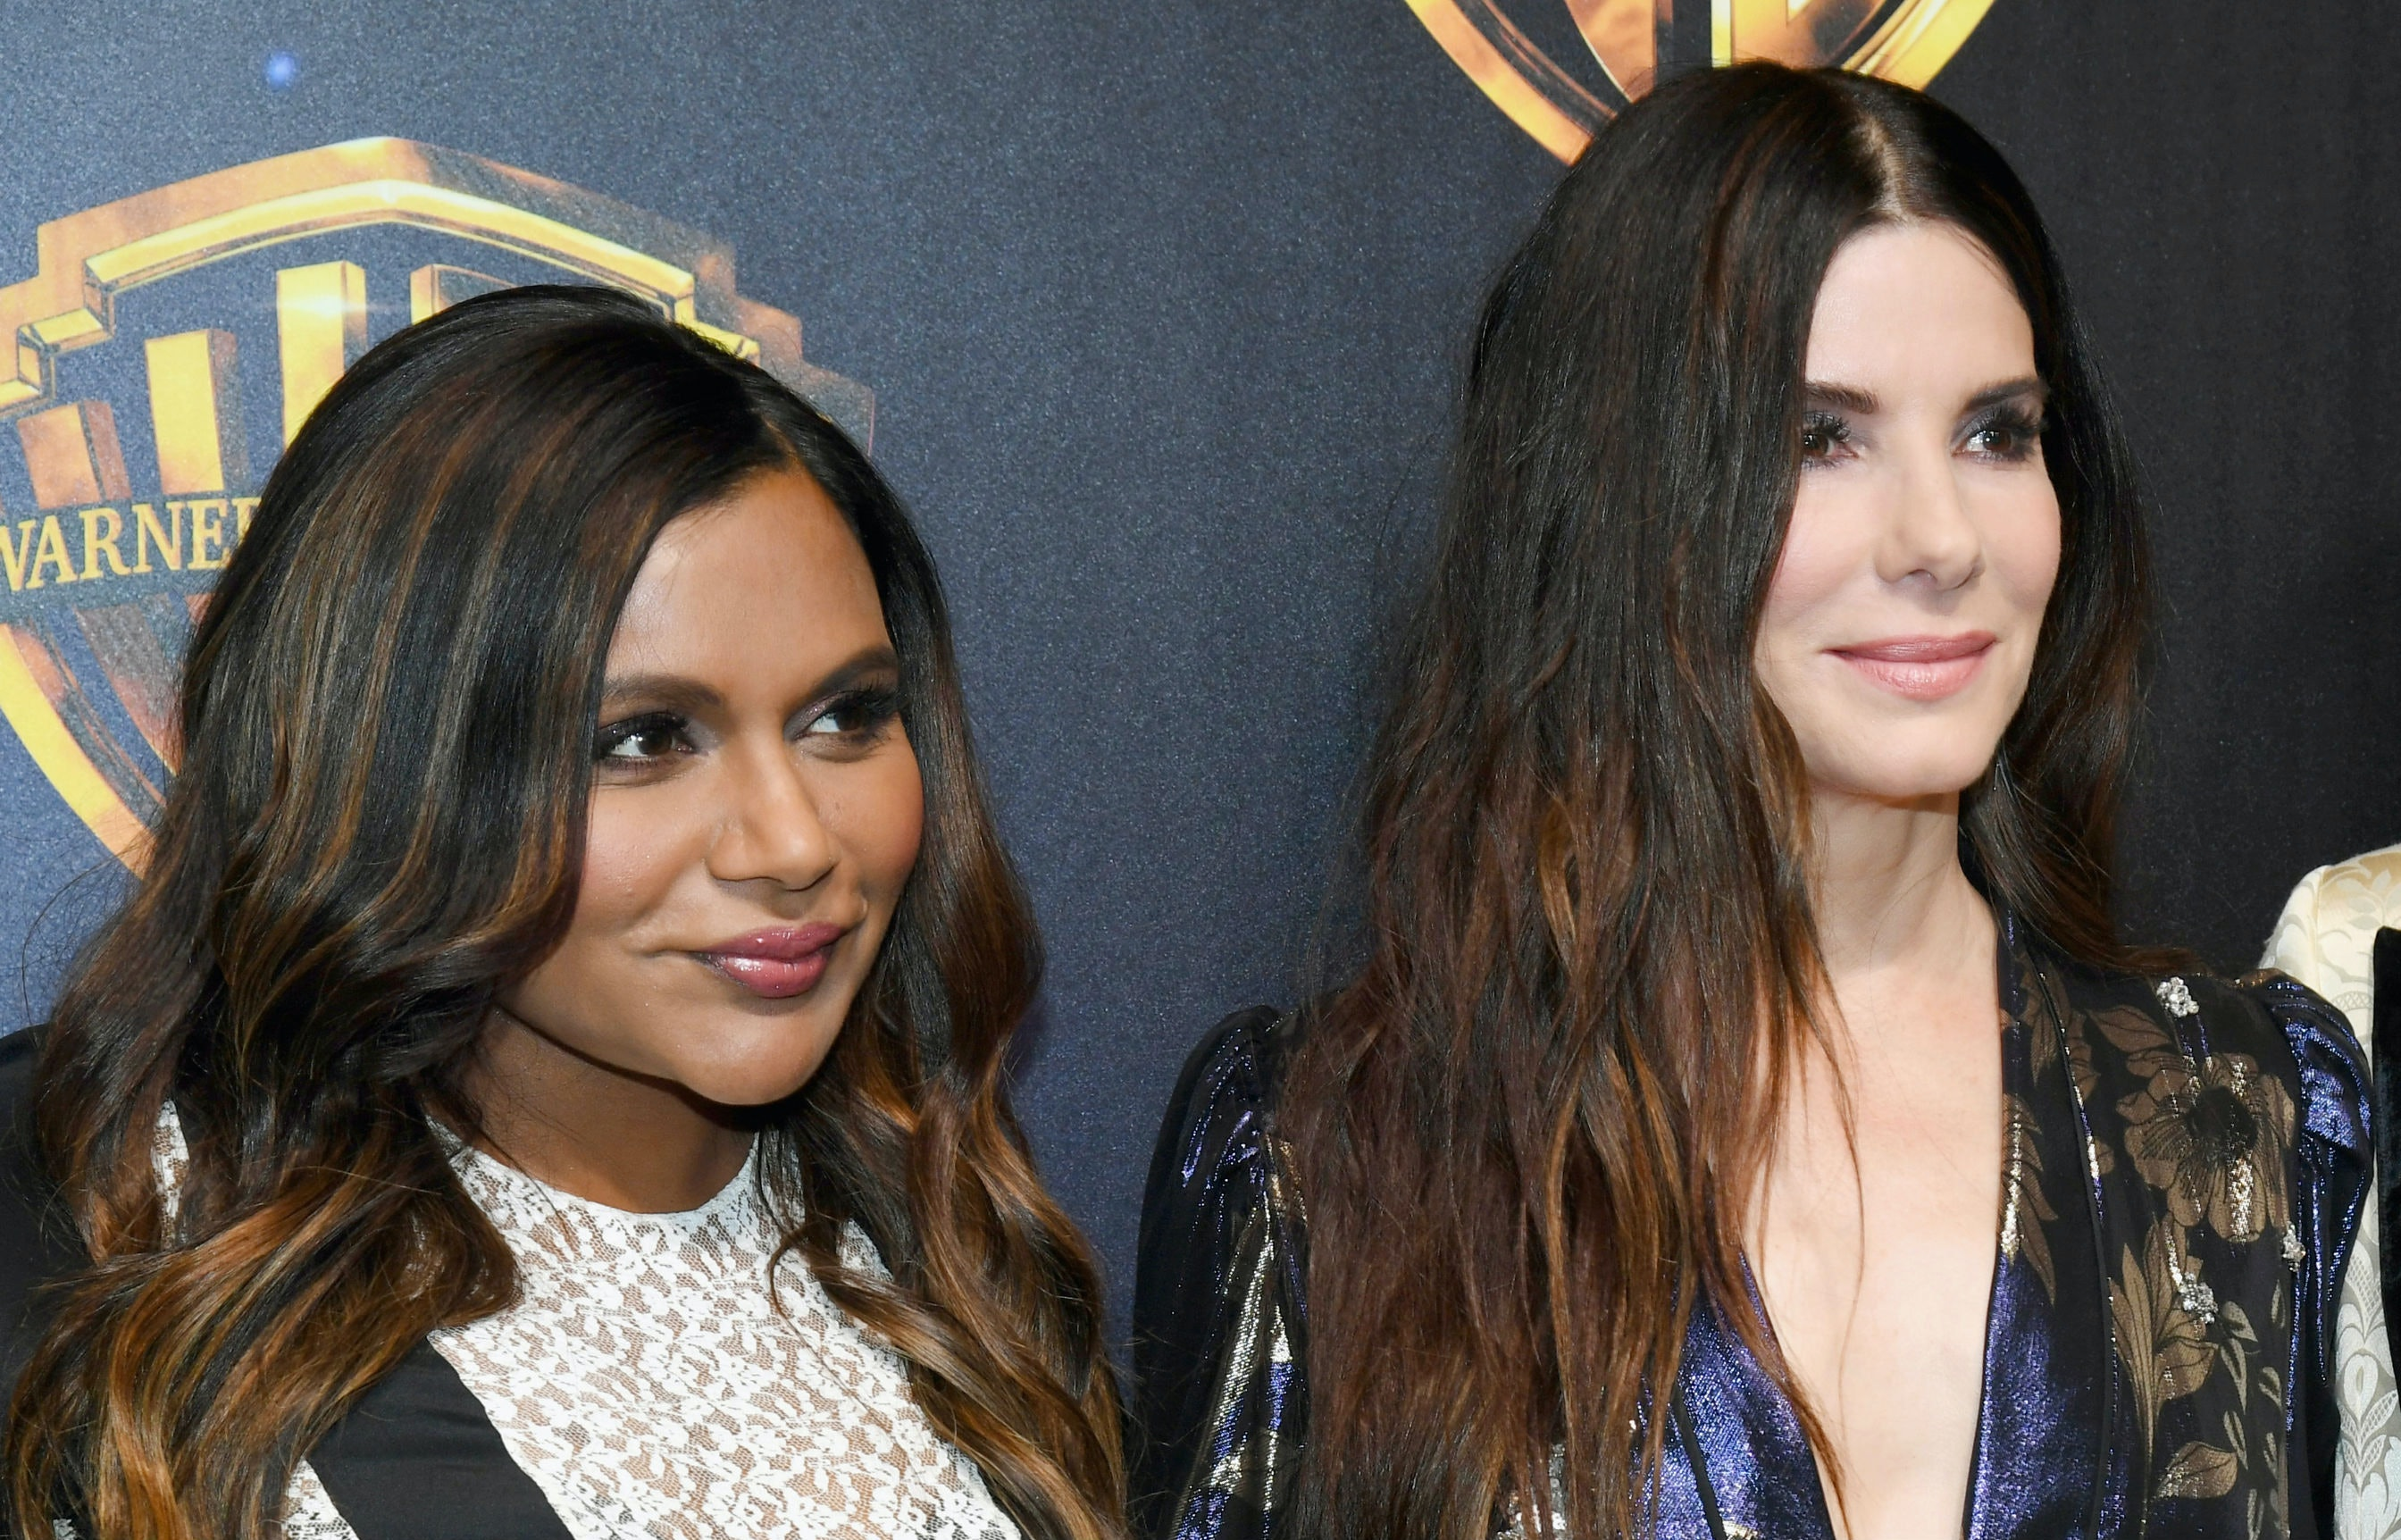 Sandra Bullock & Mindy Kaling's Comments About Filming